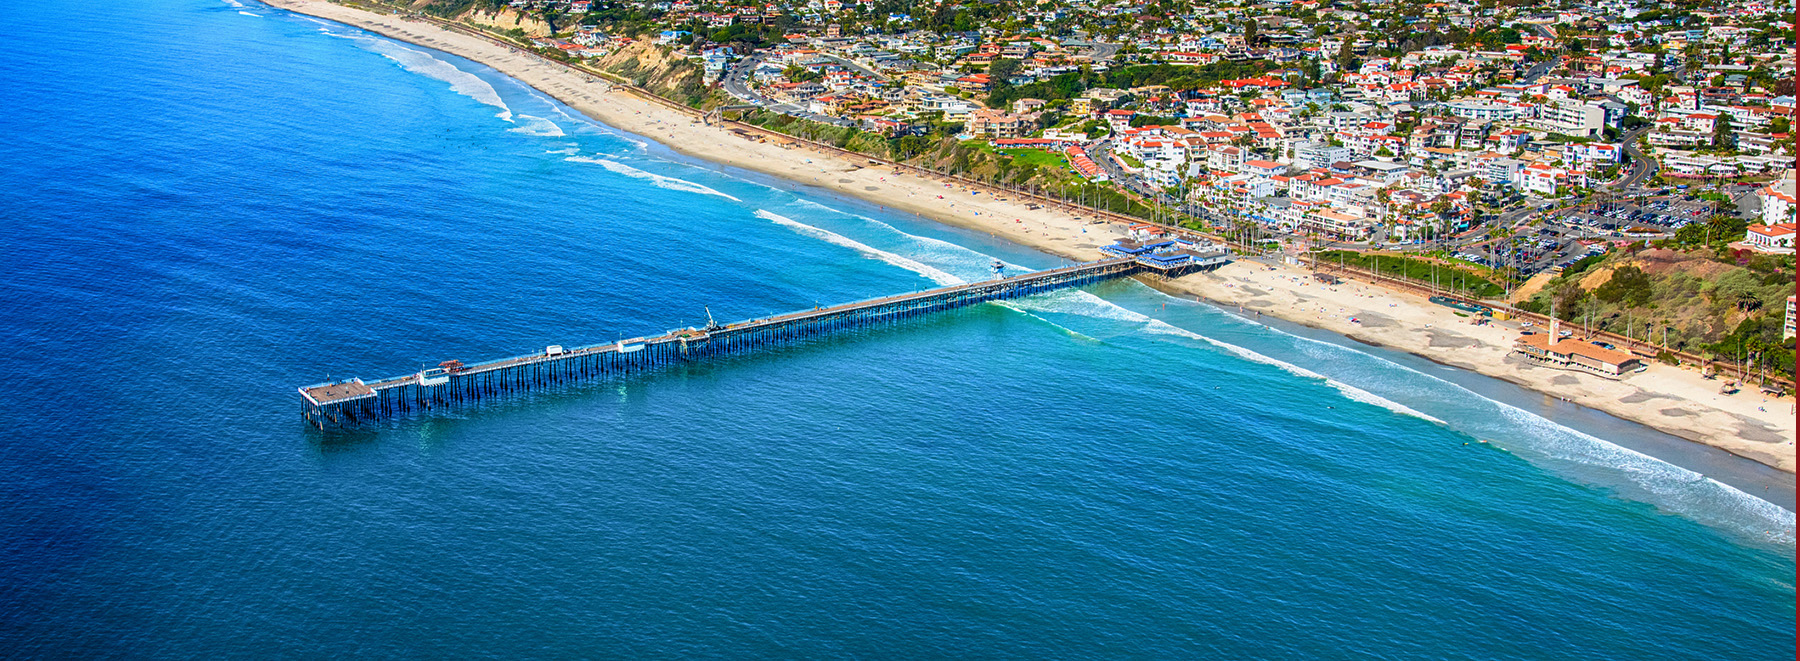 The Orange County California coastal town of San Clemente located just north of San Diego County.